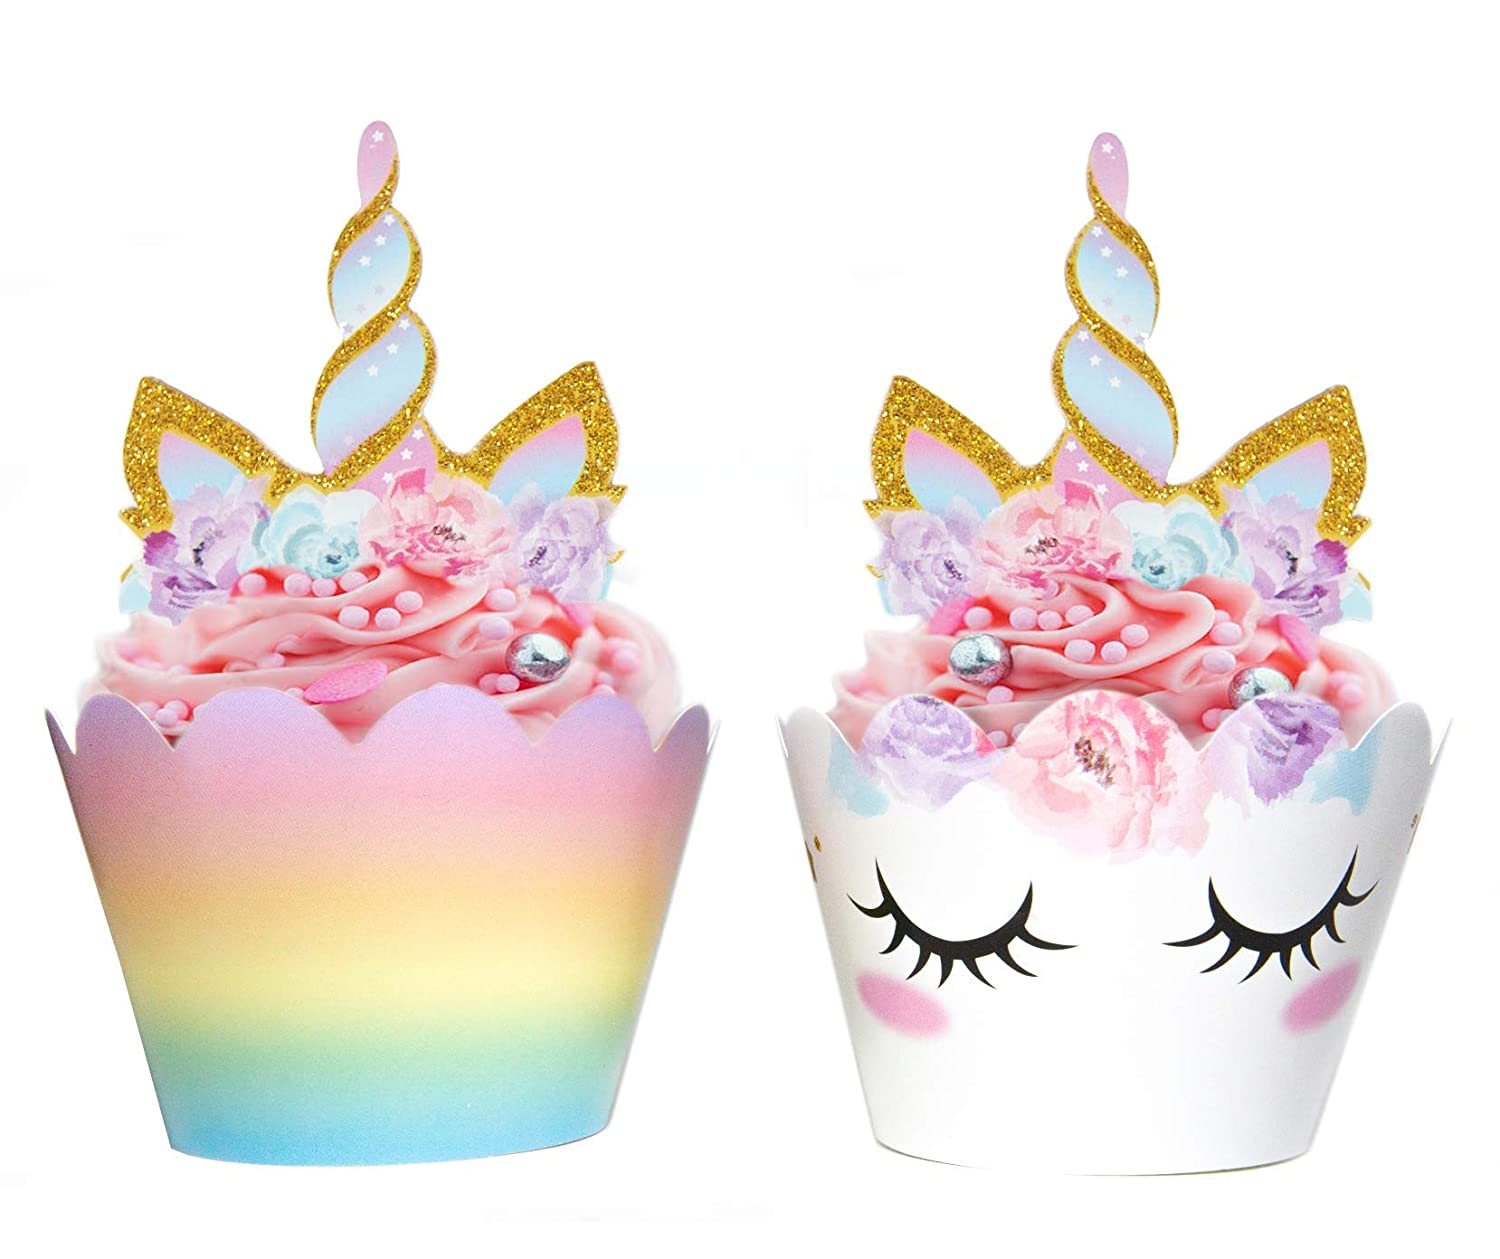 Unicorn Cupcake Decorations, Double Sided Toppers and Wrappers, Rainbow and Gold Glitter Decorations, Cute Girl's Birthday Party Supplies, 24 sets -- By Xeren Designs